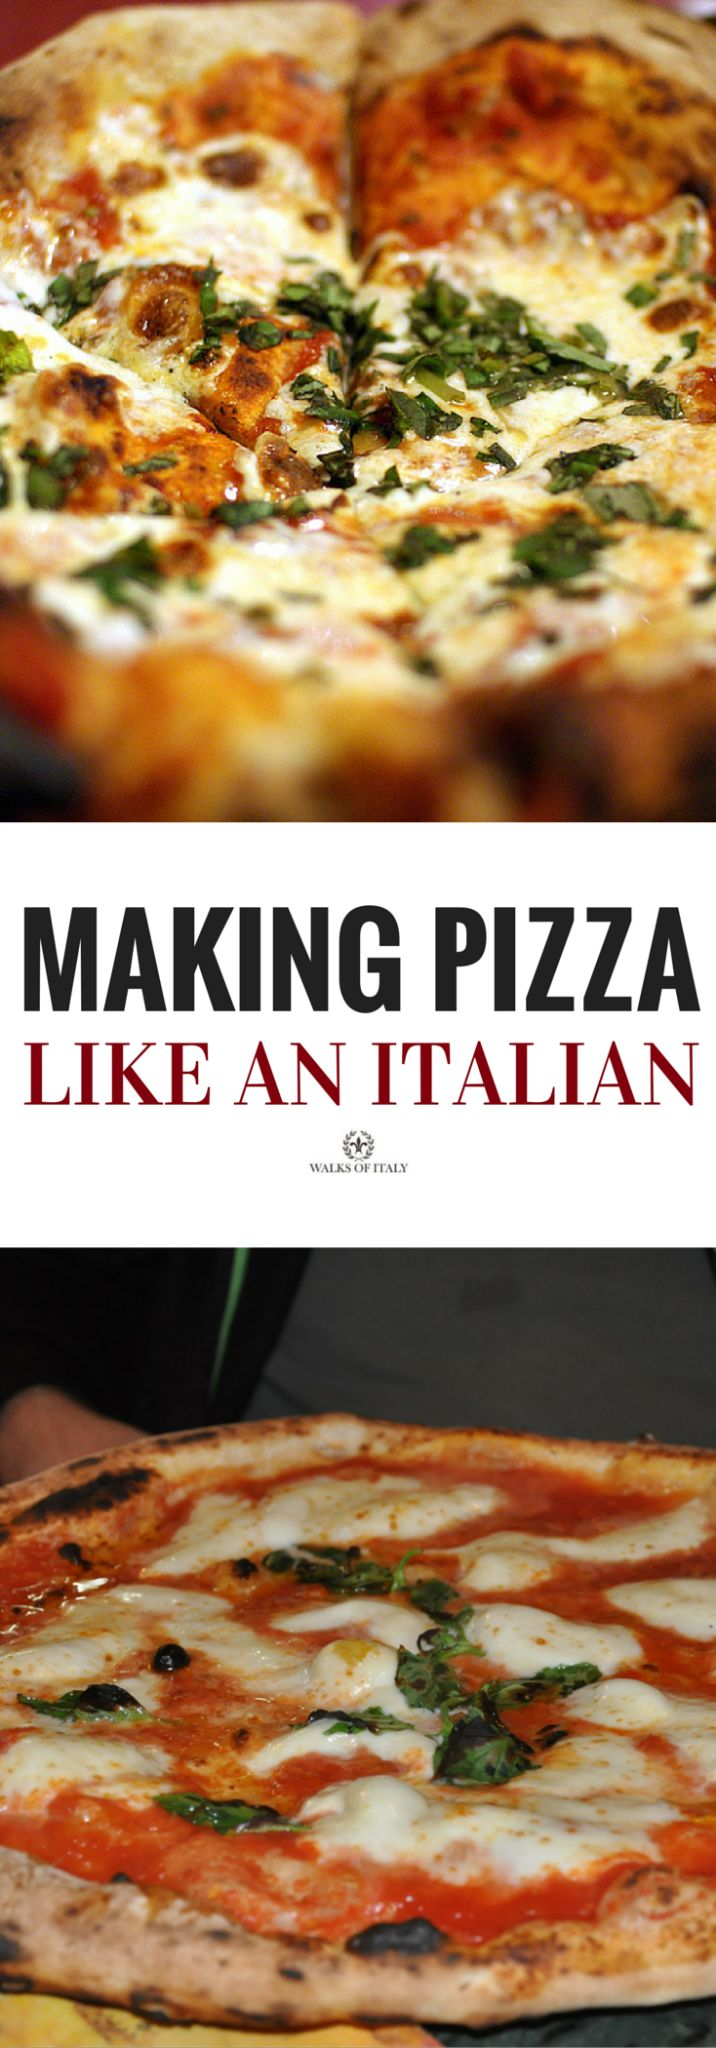 A step-by-step guide for how to make pizza like an Italian